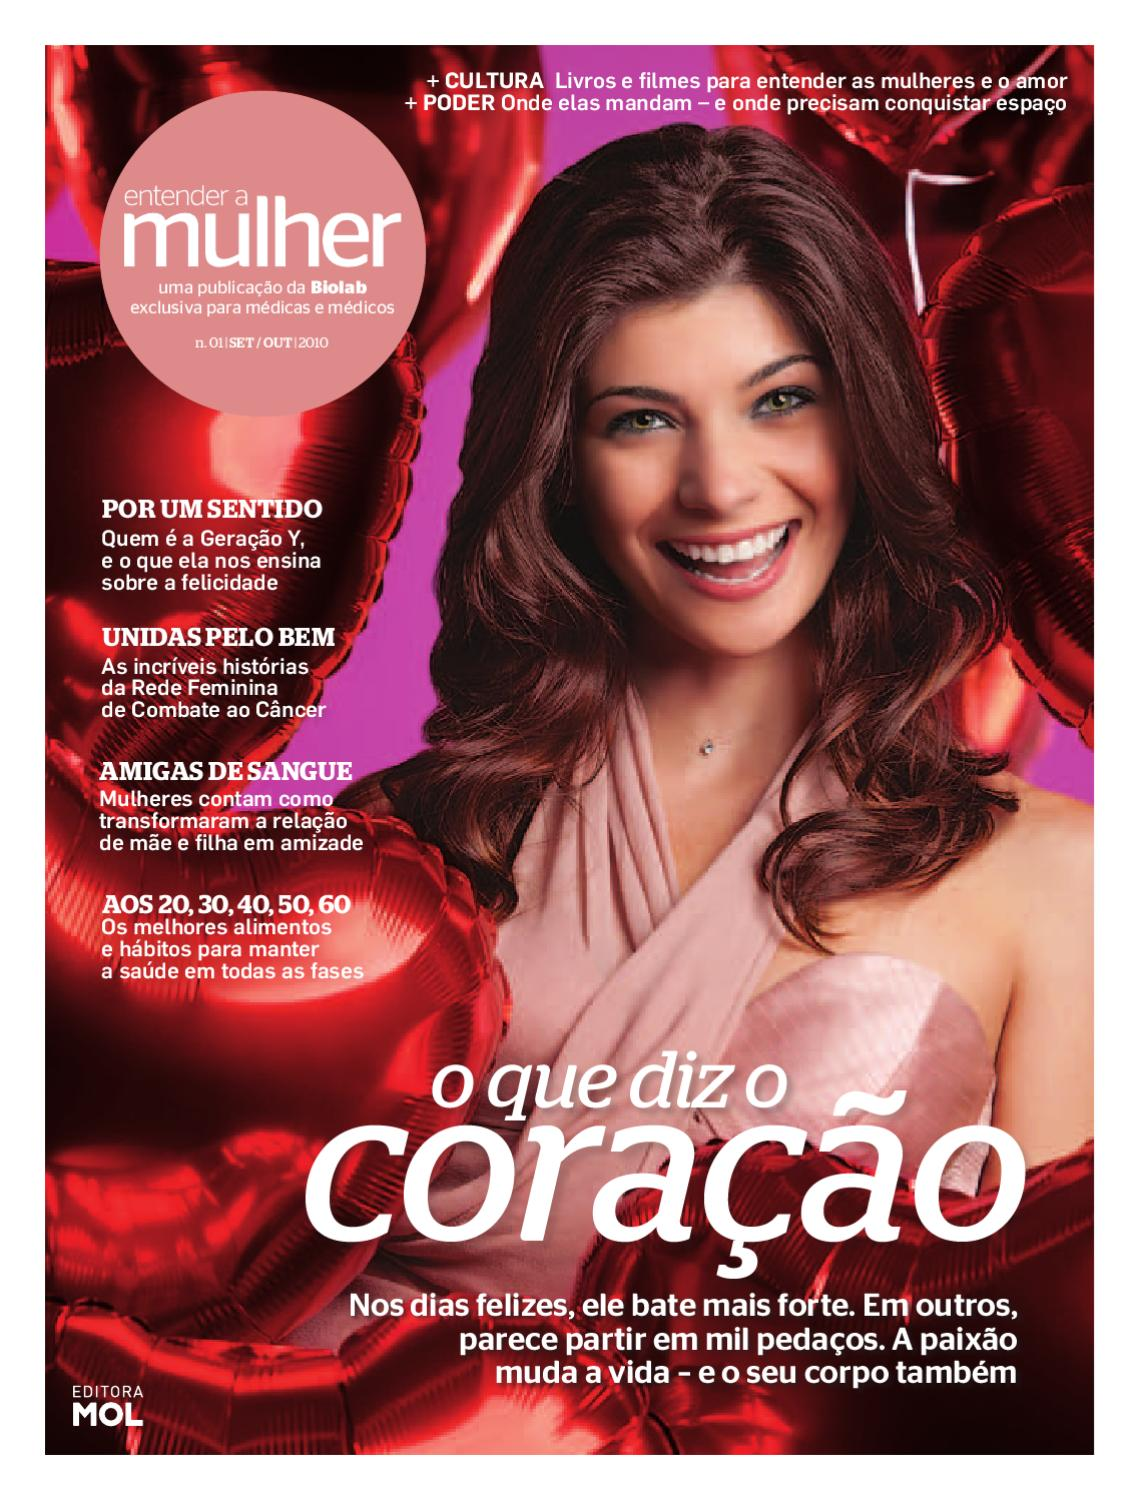 Mulheres busca 845569